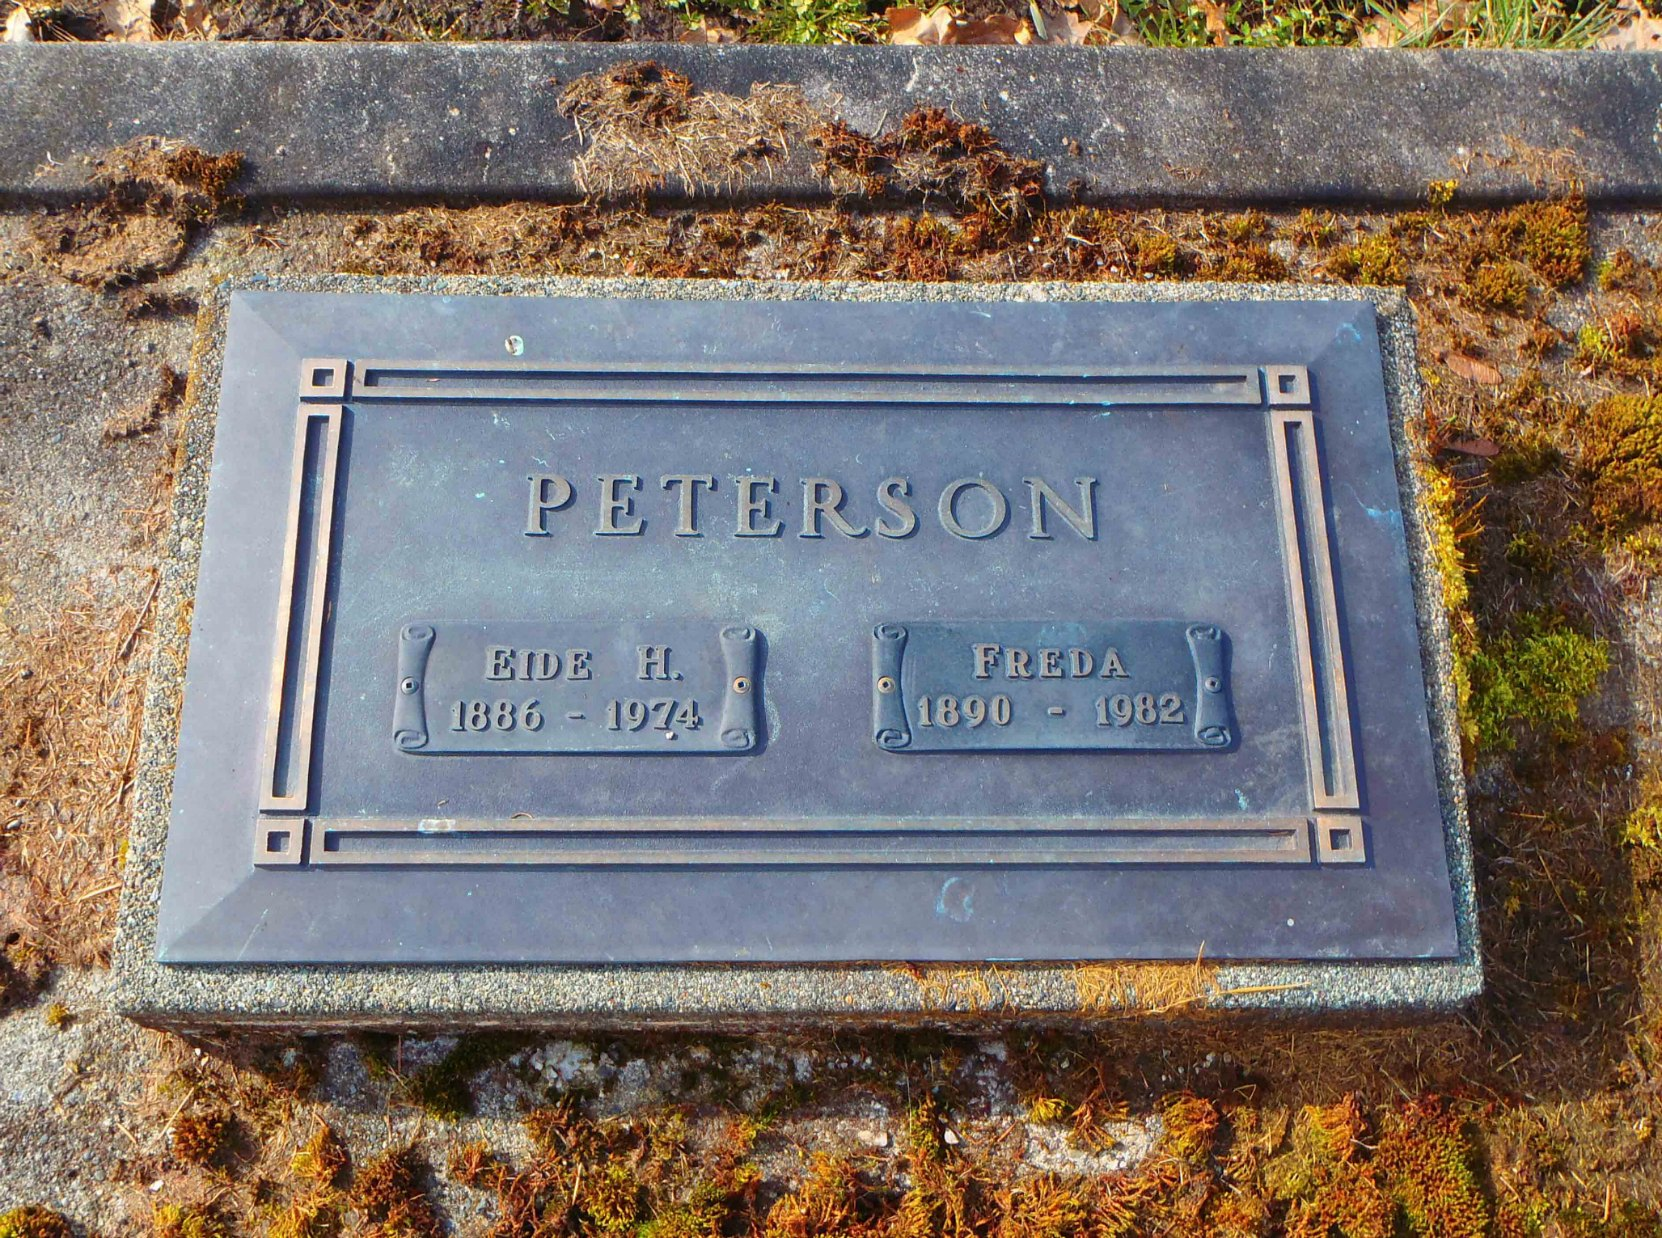 Eide Henry Peterson grave marker, St. Mary's Somenos Anglican Cemetery, North Cowichan